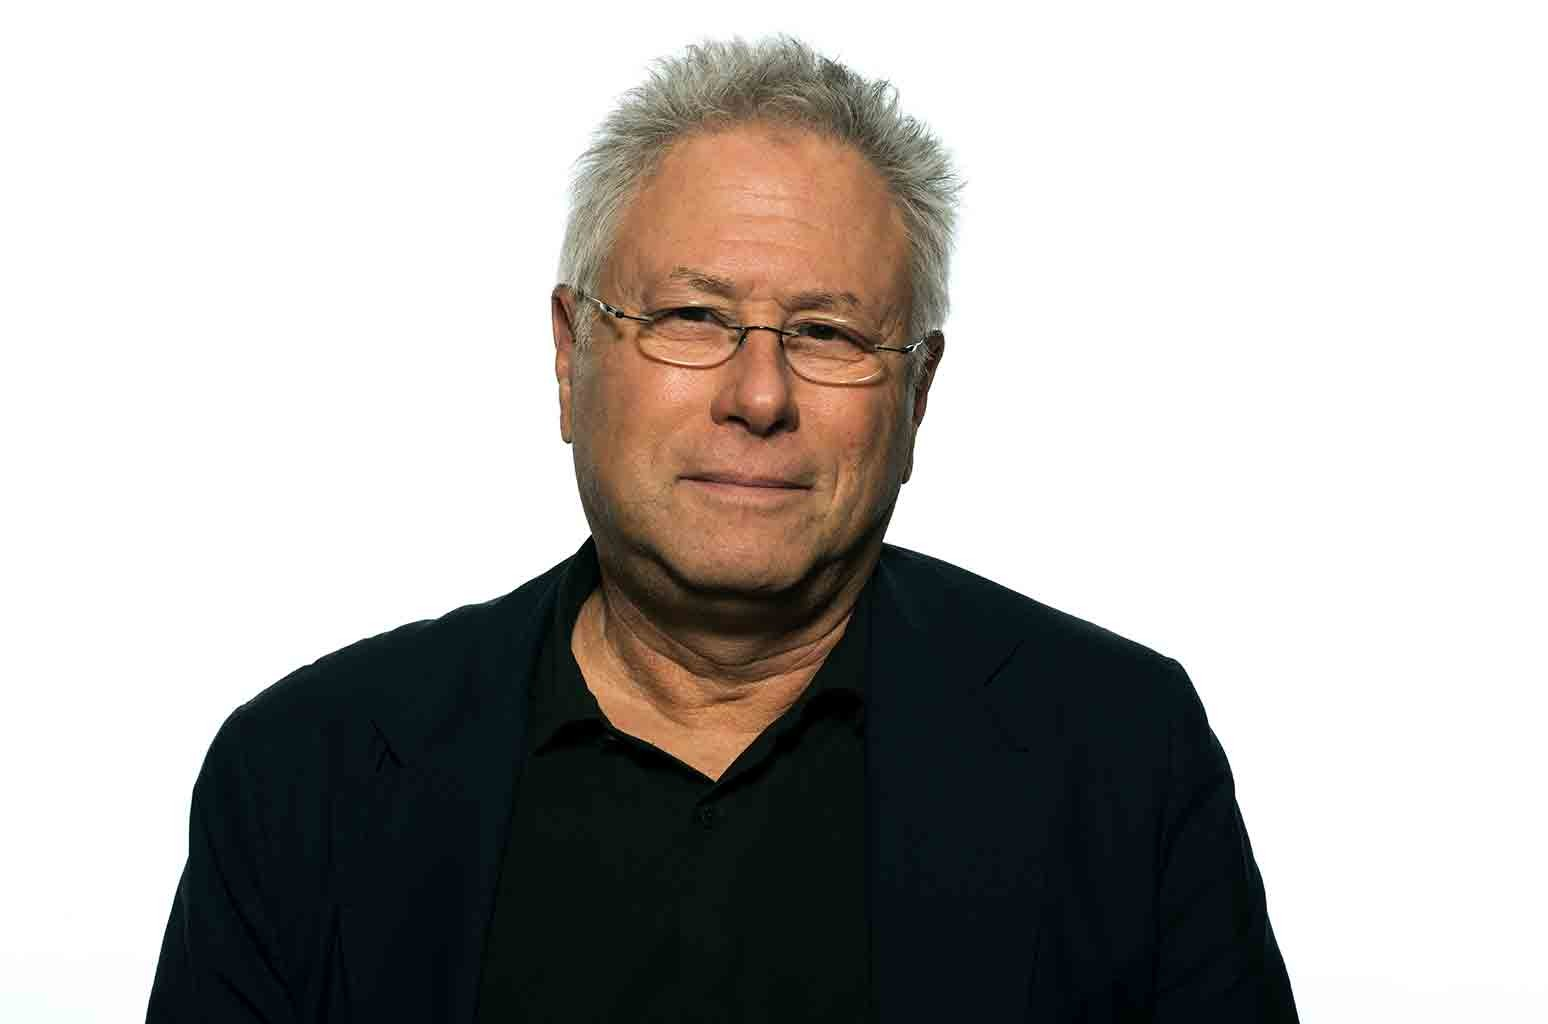 """Alan Menken appears at the press junket for """"Beauty and the Beast,"""" at the Montage Hotel on March 5, 2017 in Beverly Hills, Calif."""